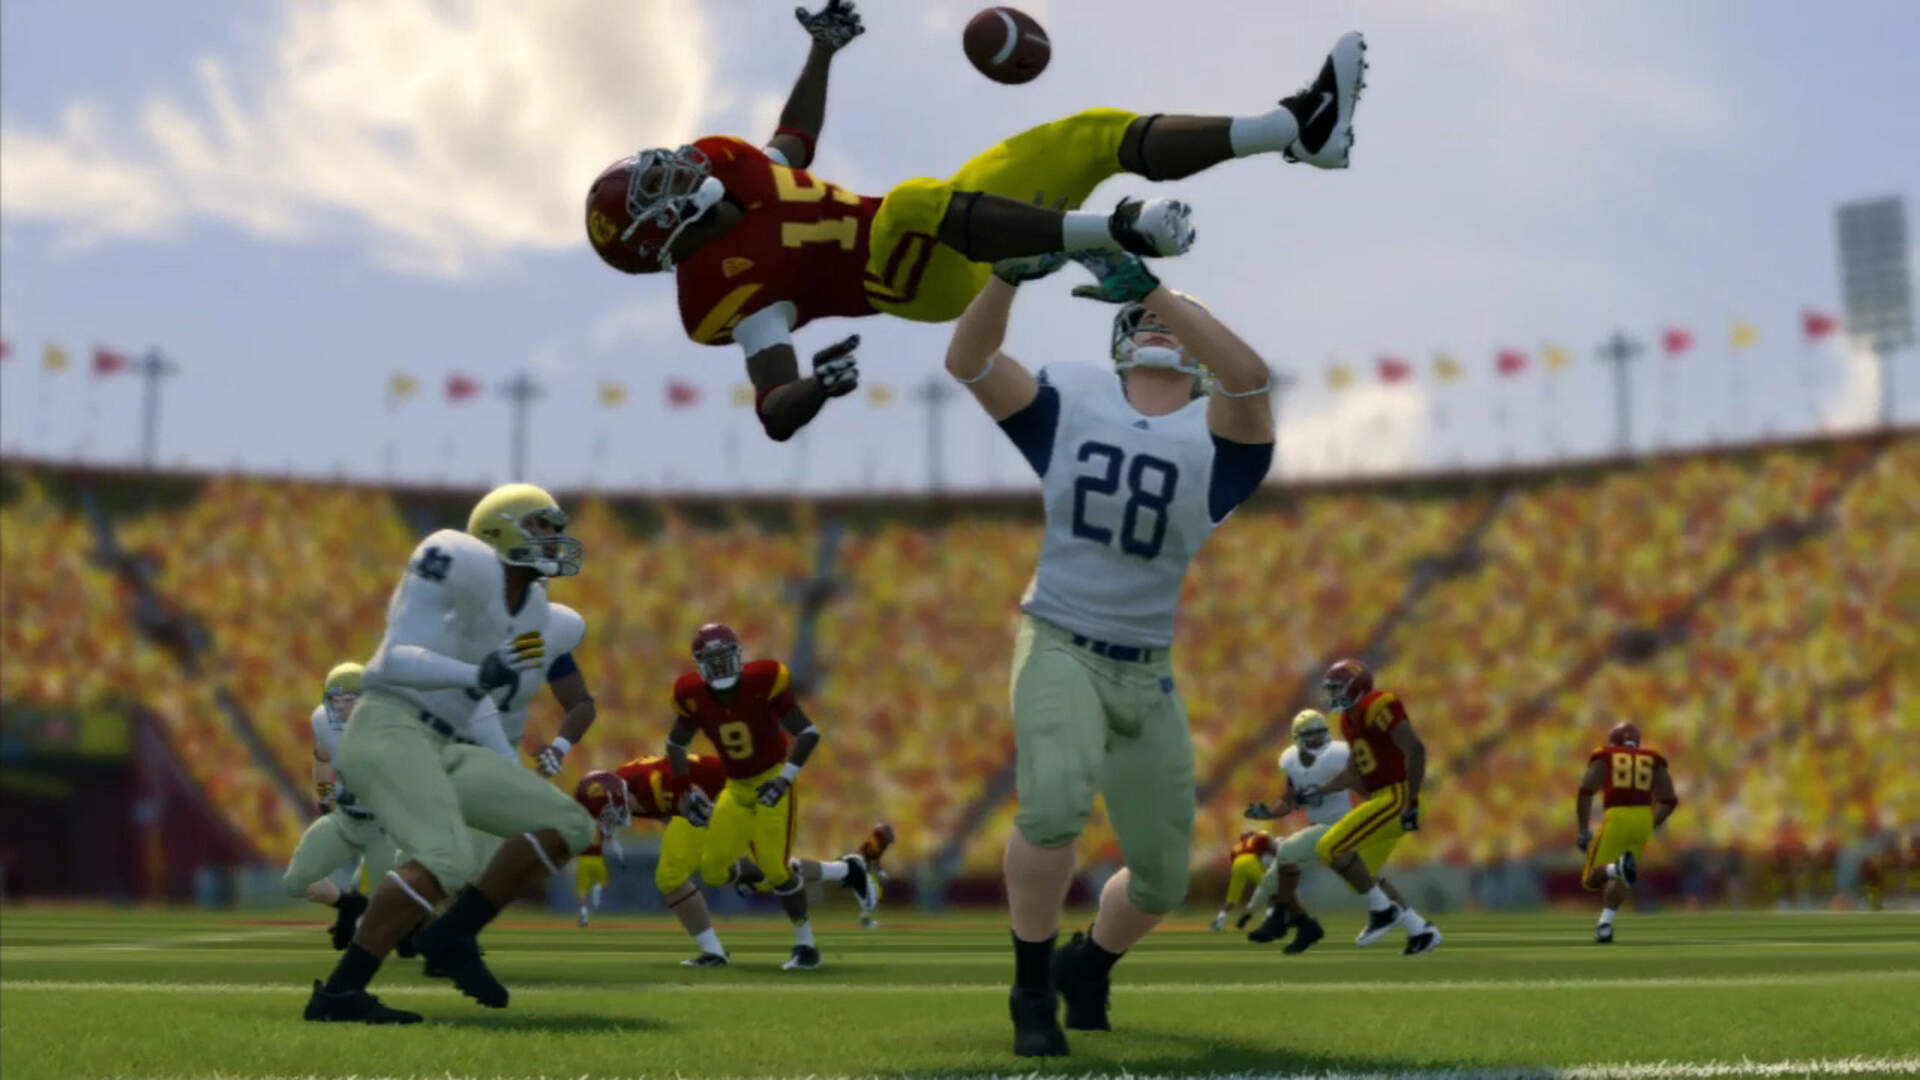 How a New California Law Could Pave the Return of EA's NCAA Football Games